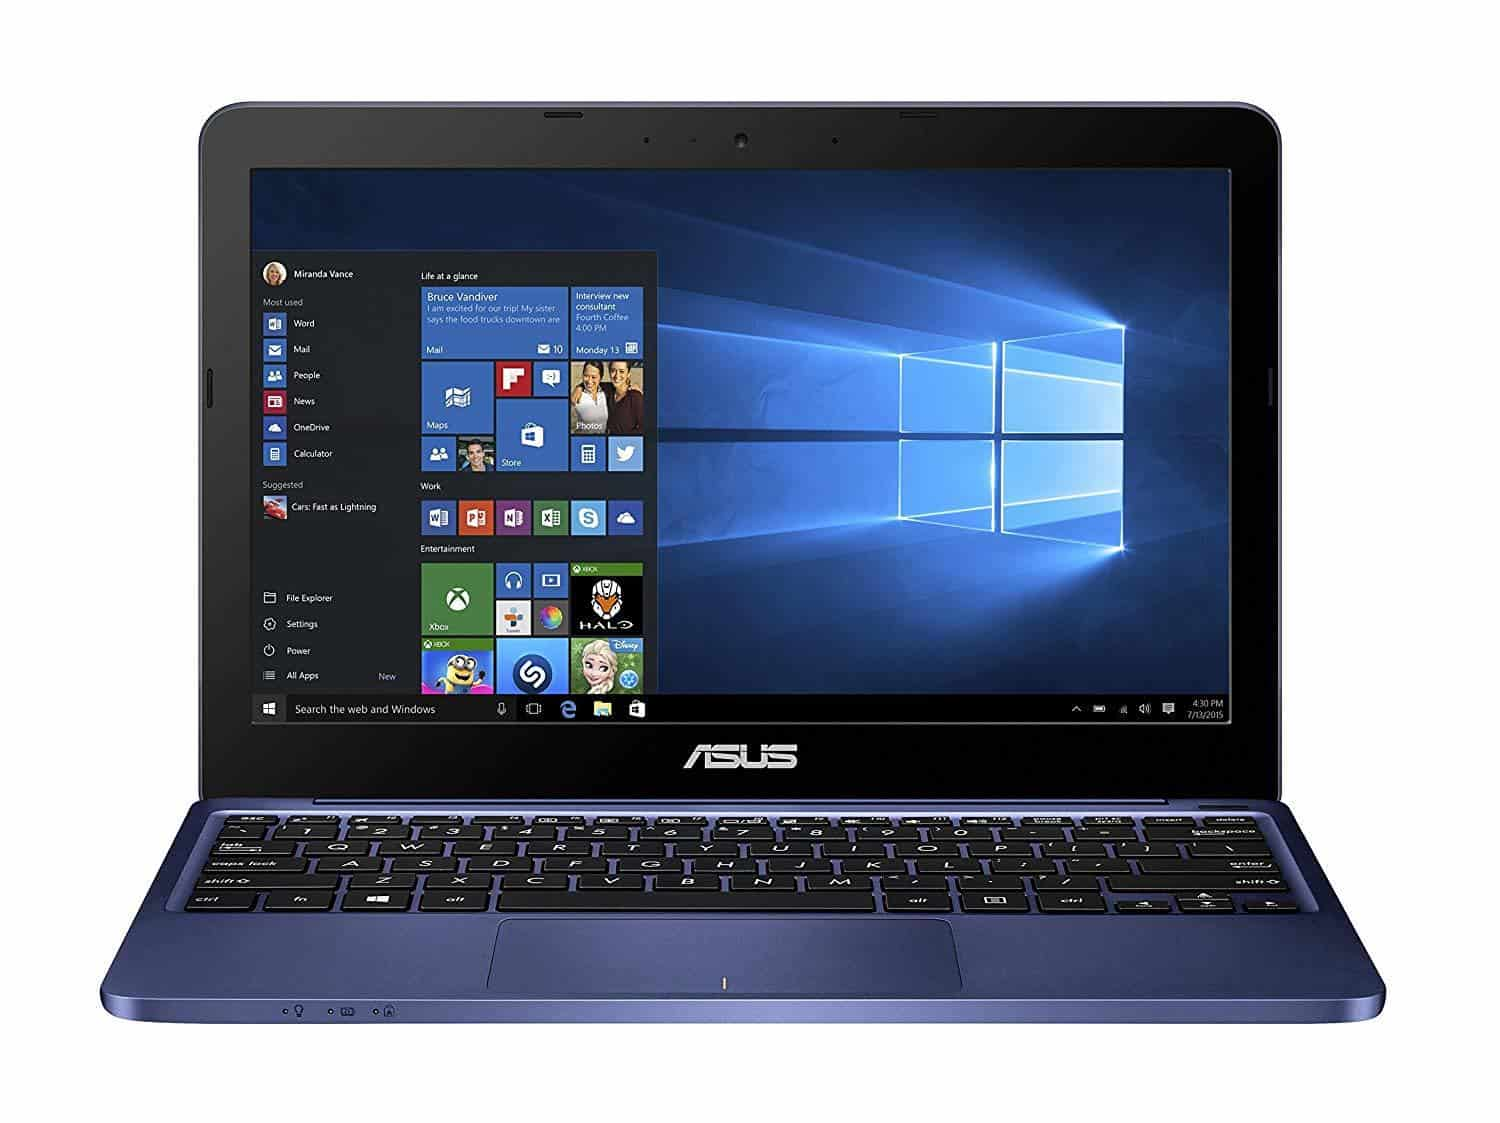 ASUS EEEBOOK E200HA Review